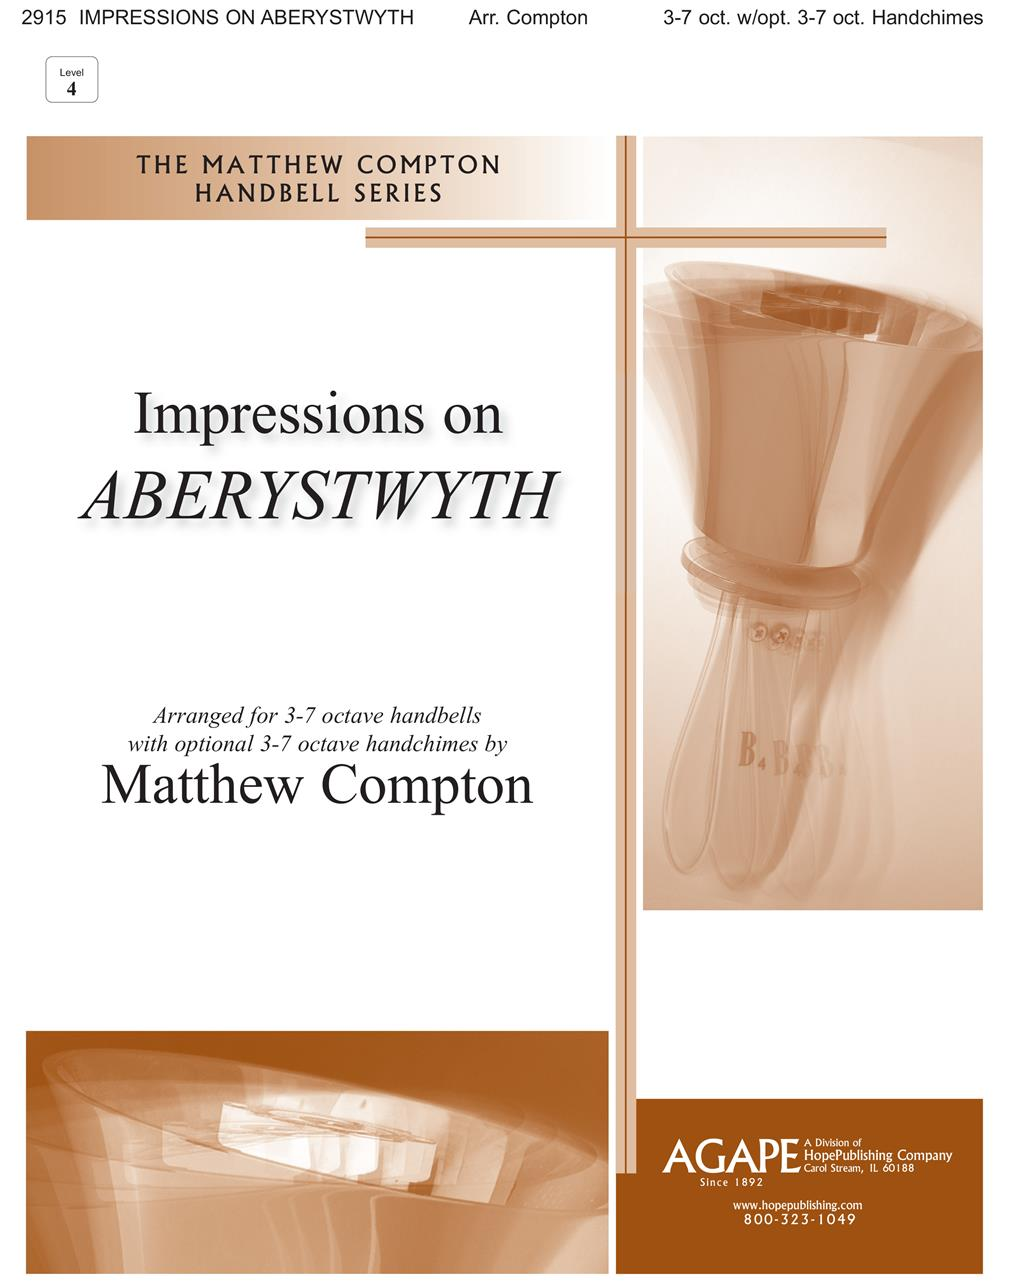 Impressions On Aberystwyth - 3-7 Oct. Cover Image